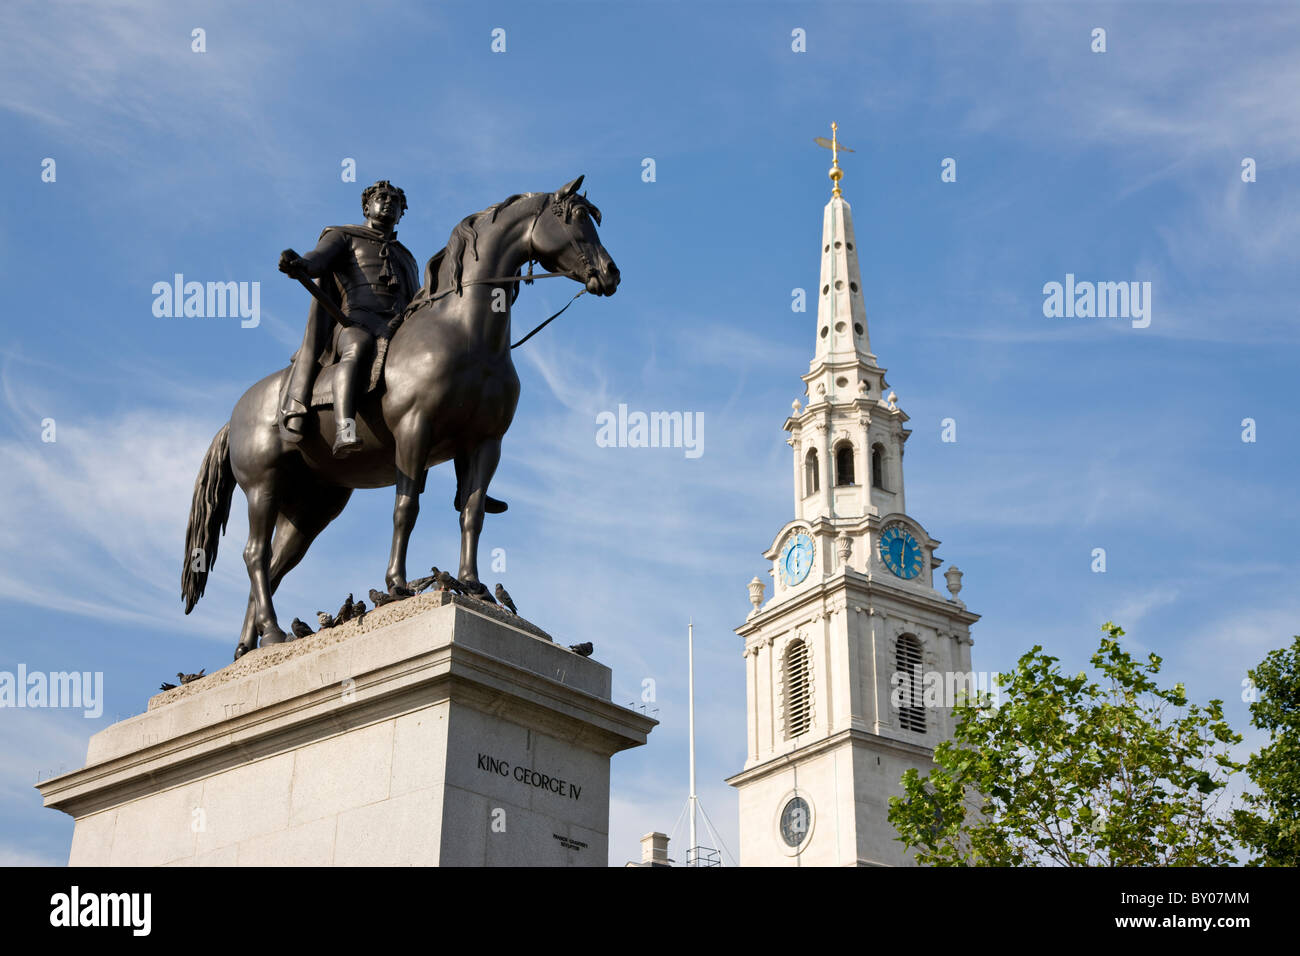 King George IV statue at Trafalgar Square with St Martin in the Fields Church in background - Stock Image